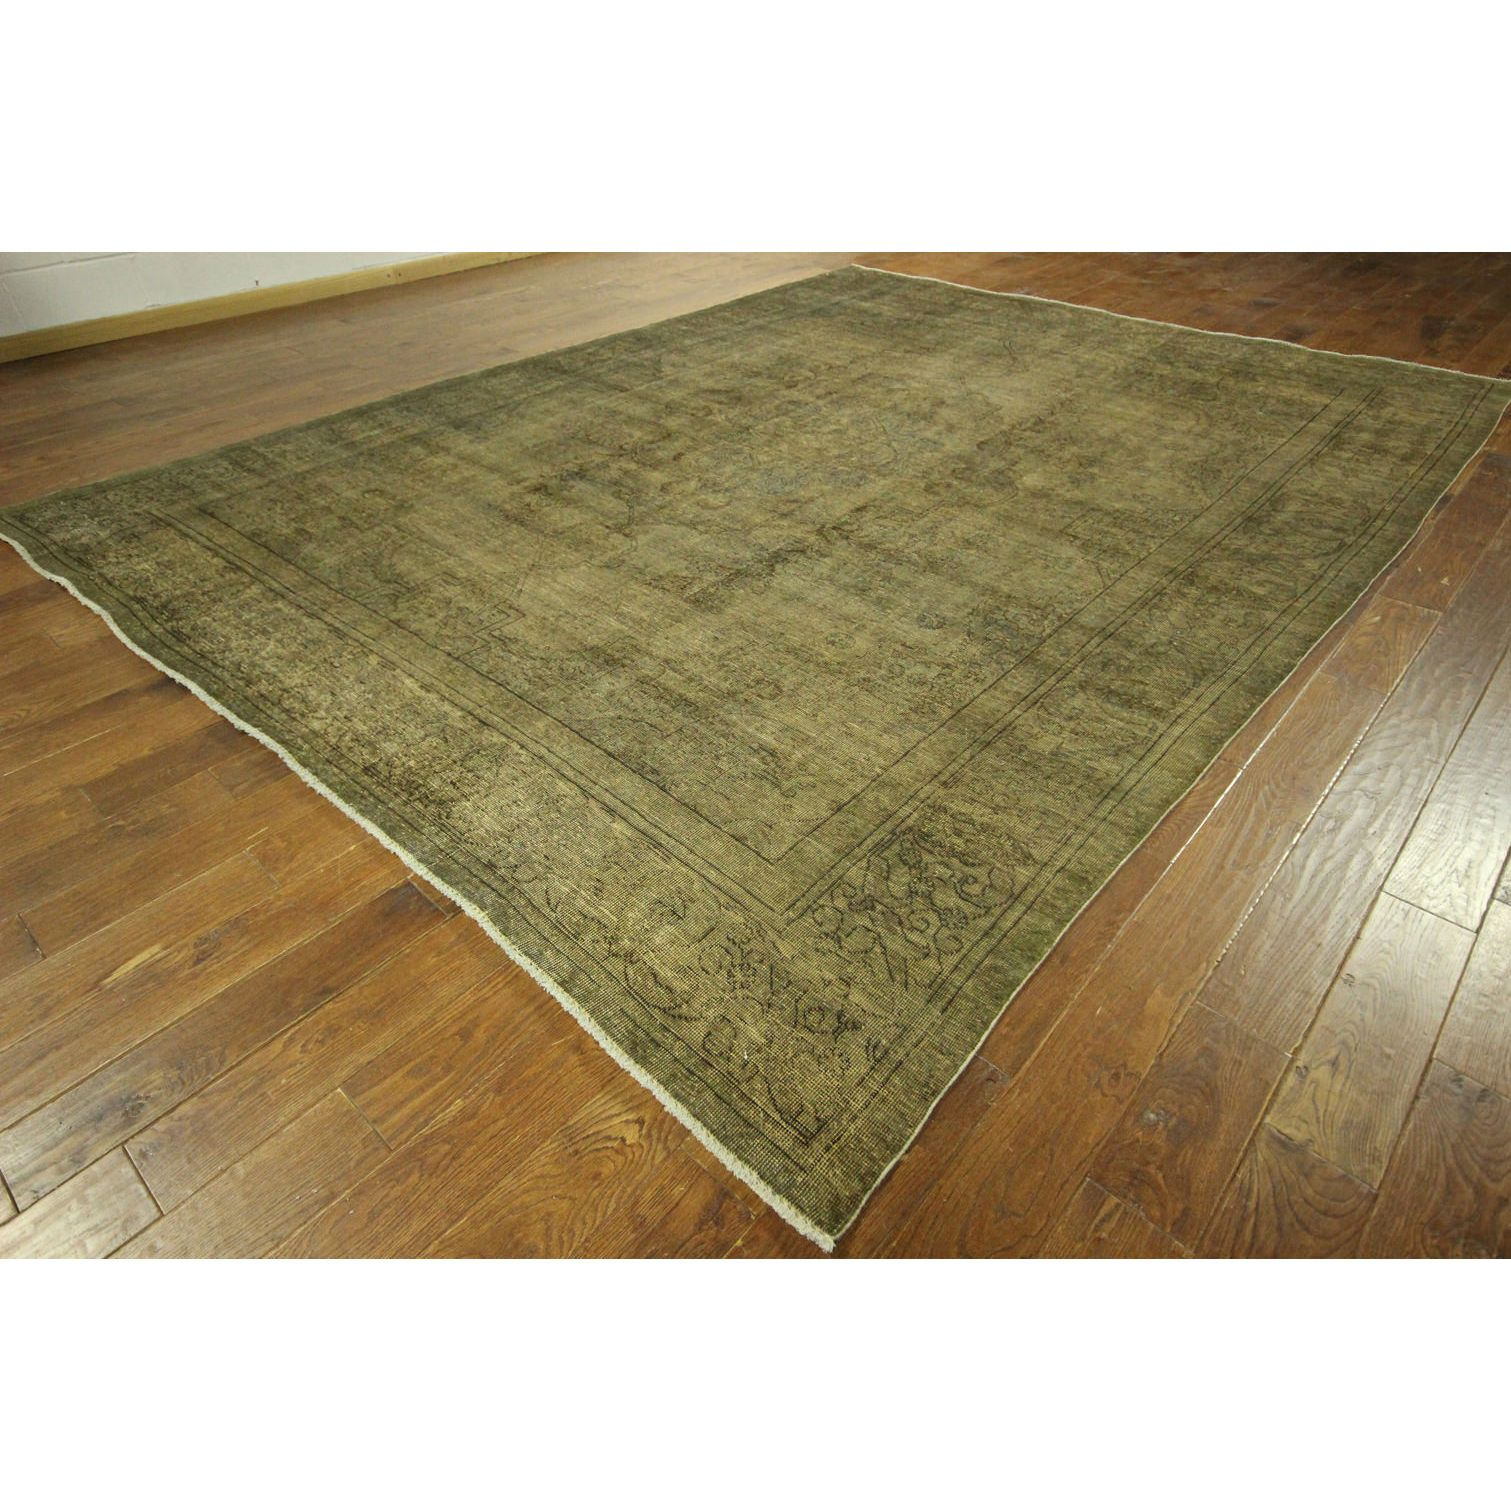 """Manhattan Overdyed Green-Biege Persian Design Hand-knotted Wool Area Rug (10' x 13') (Color: Green, Size: 9' 9"""" X 12' 5""""), Size 10' x 13'"""